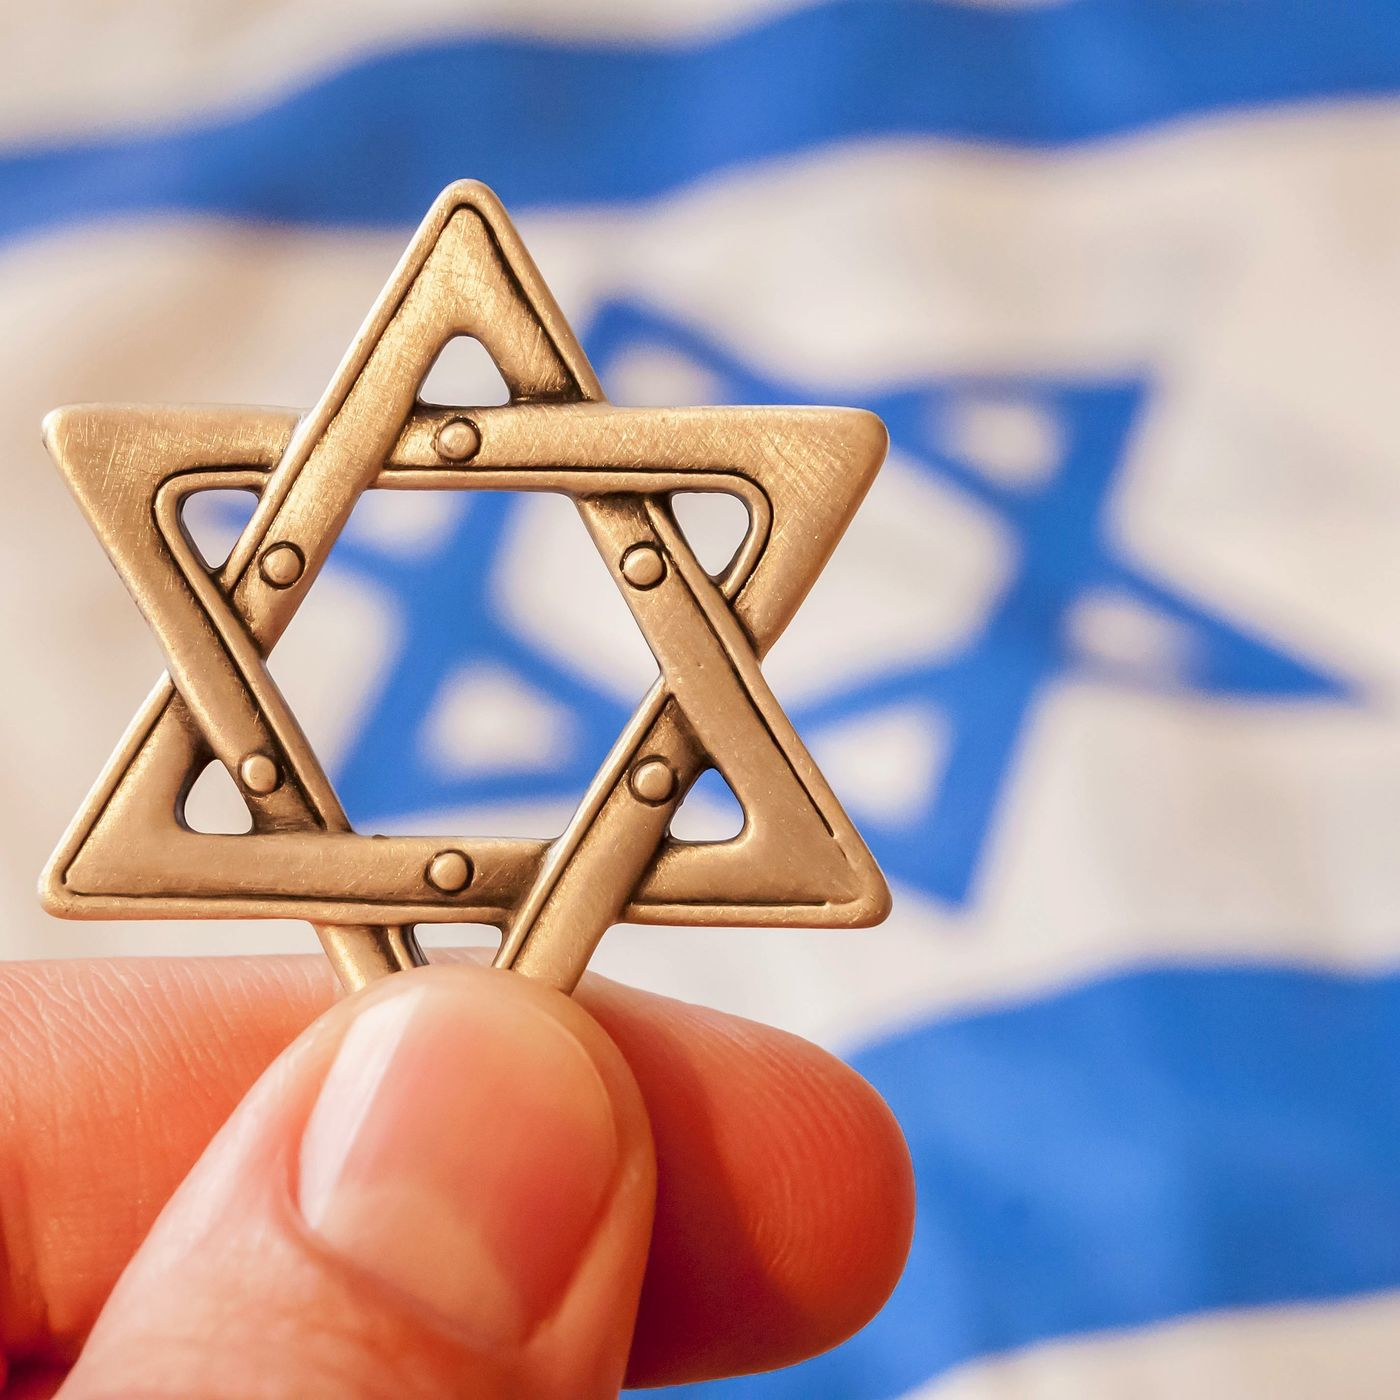 Are The Jews Still God's Chosen People?